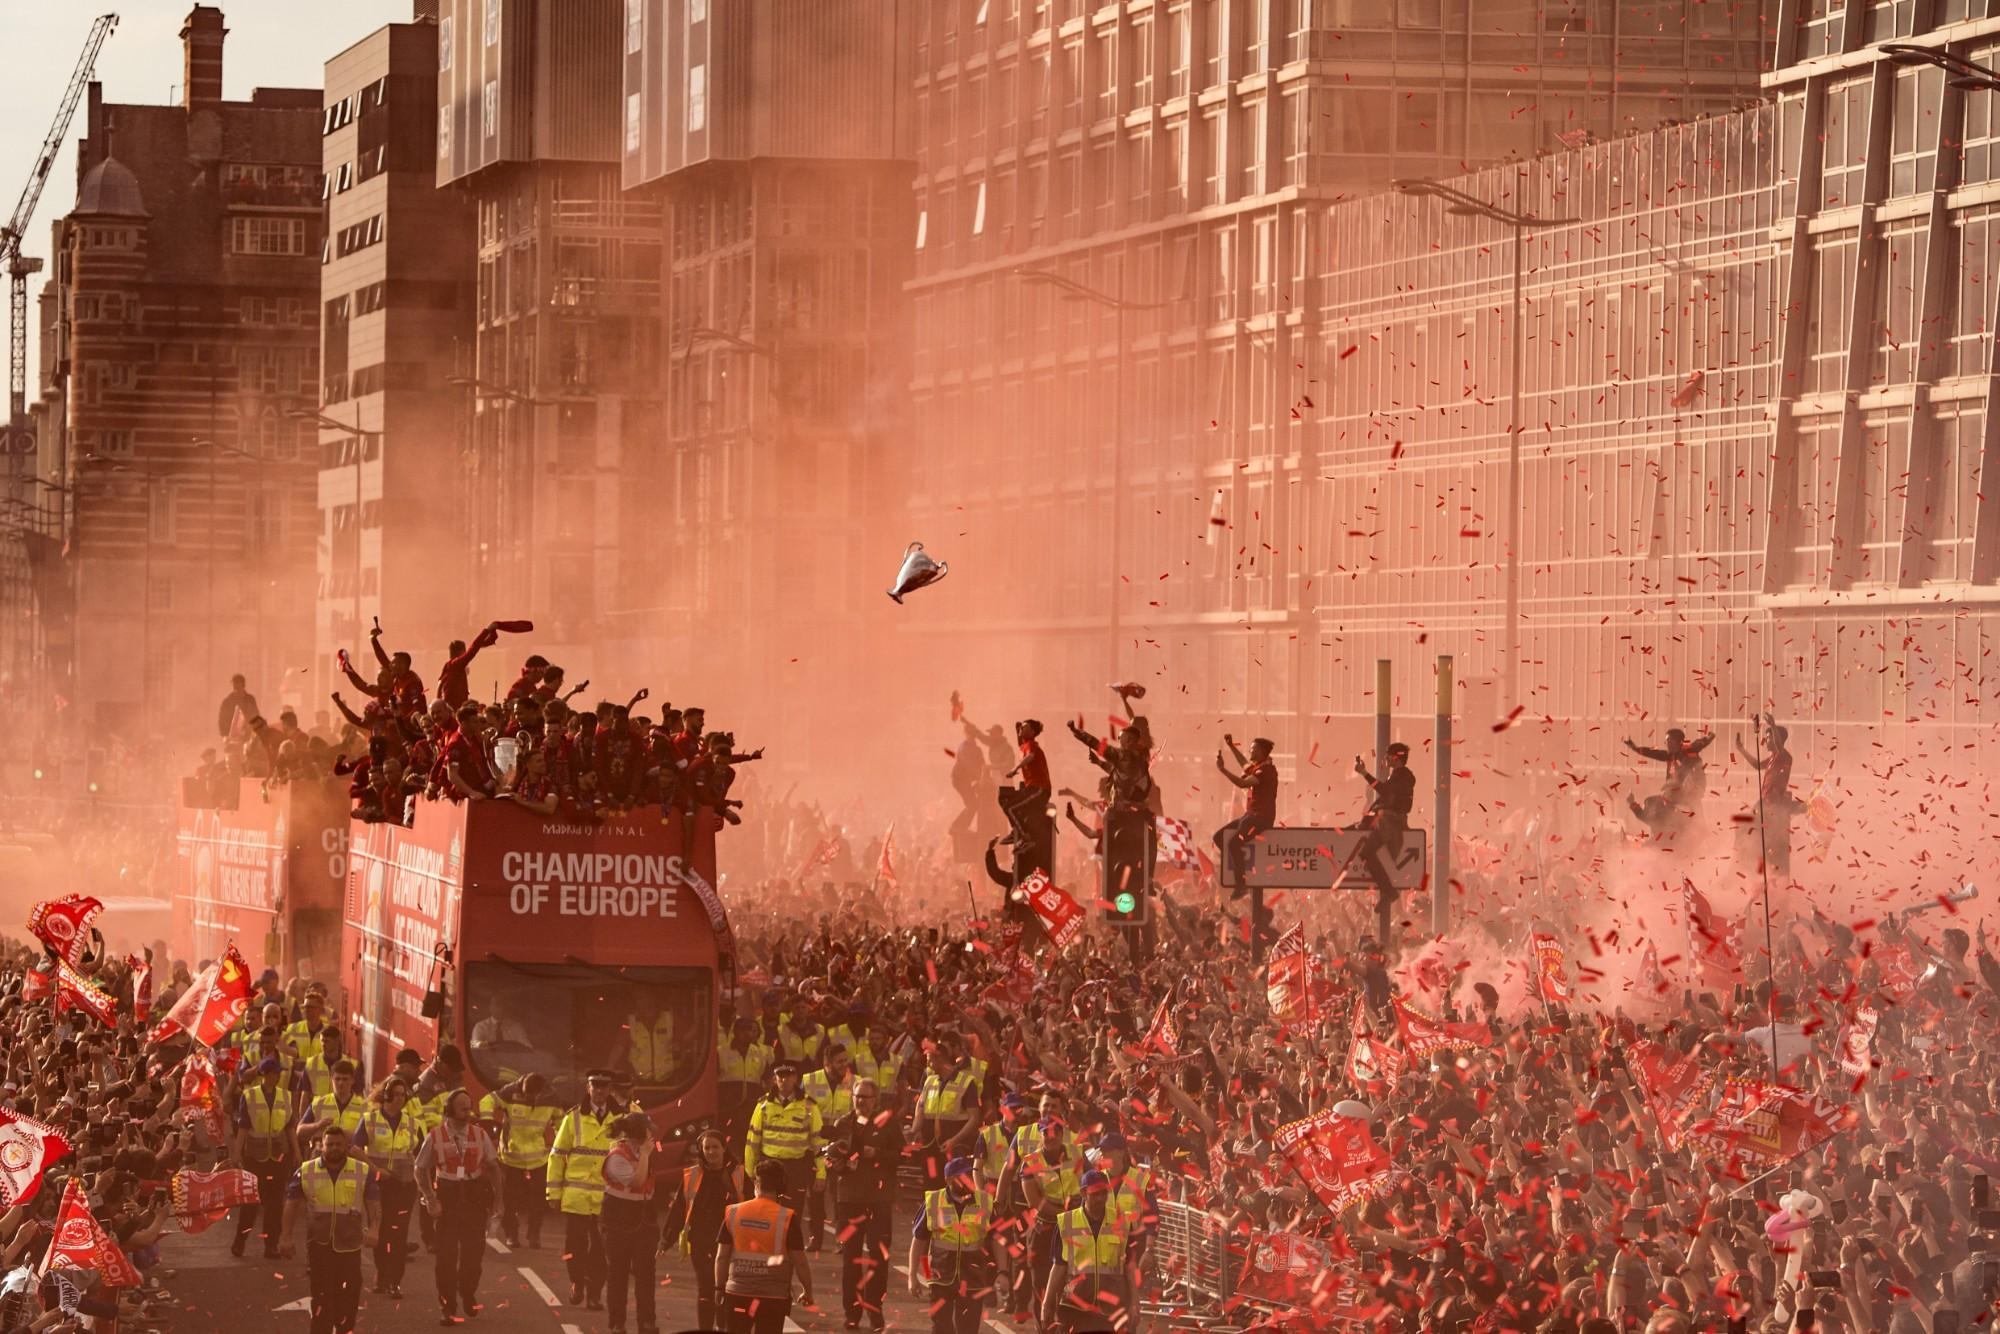 A trophy-shaped balloon floats over the crowd in Liverpool, England, as football fans line the streets on 2 June during the open-top bus parade celebrating Liverpool's win against Tottenham Hotspur in the UEFA Champions League final.